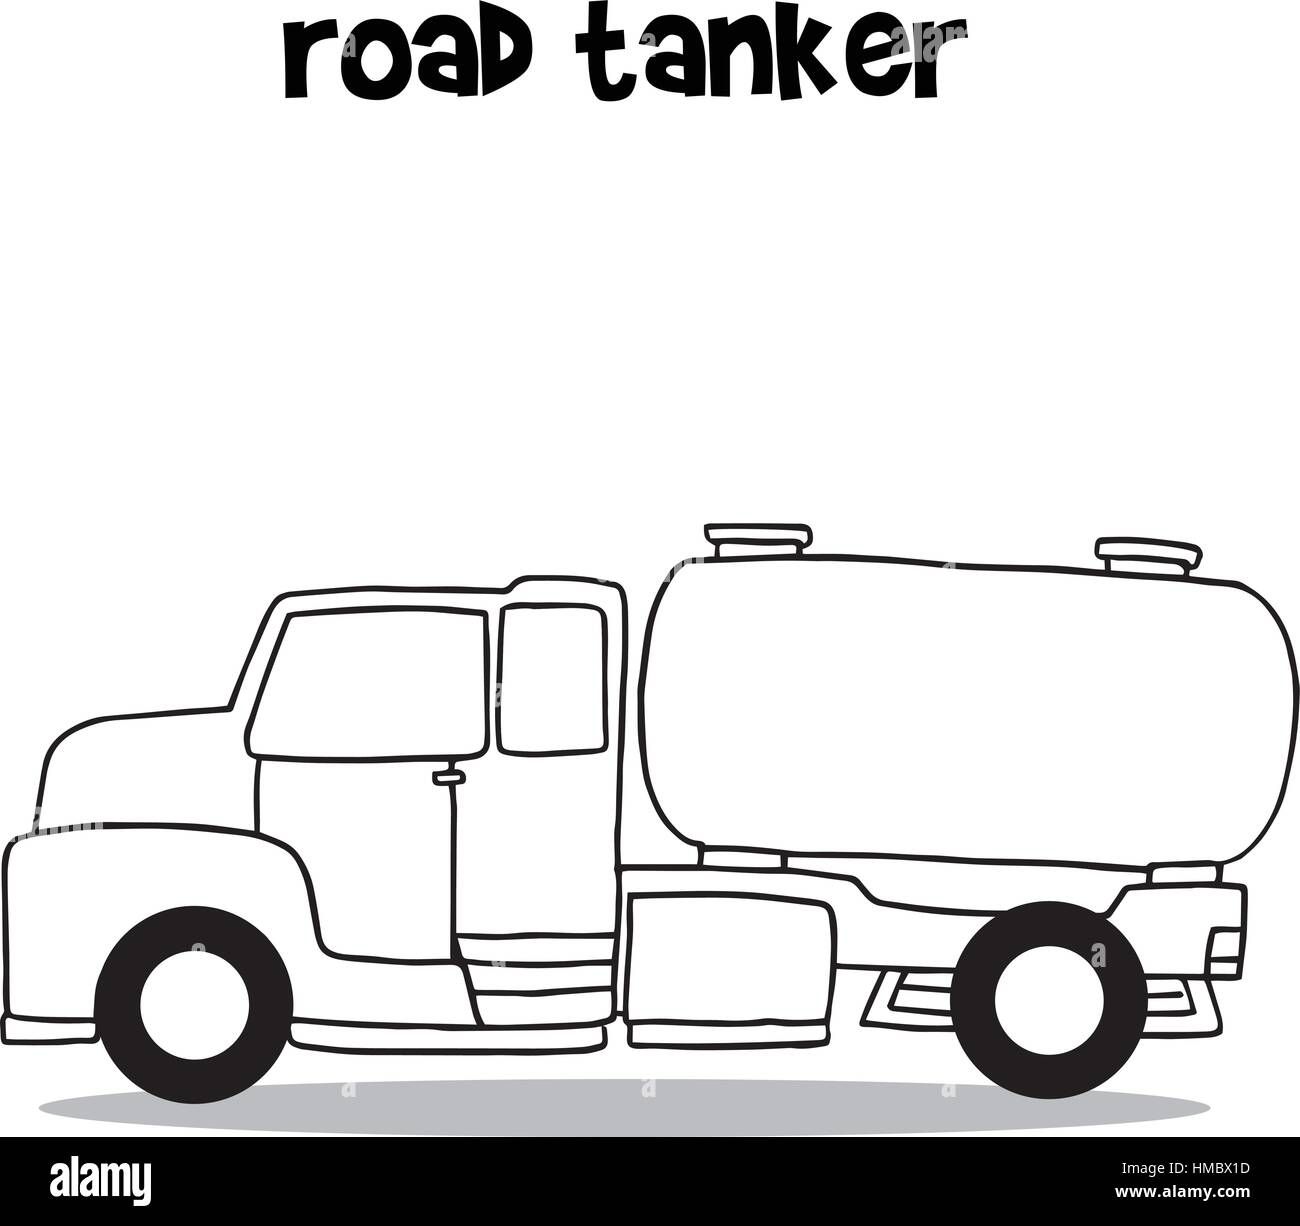 Road tanker with hand draw Stock Vector Art & Illustration, Vector ...